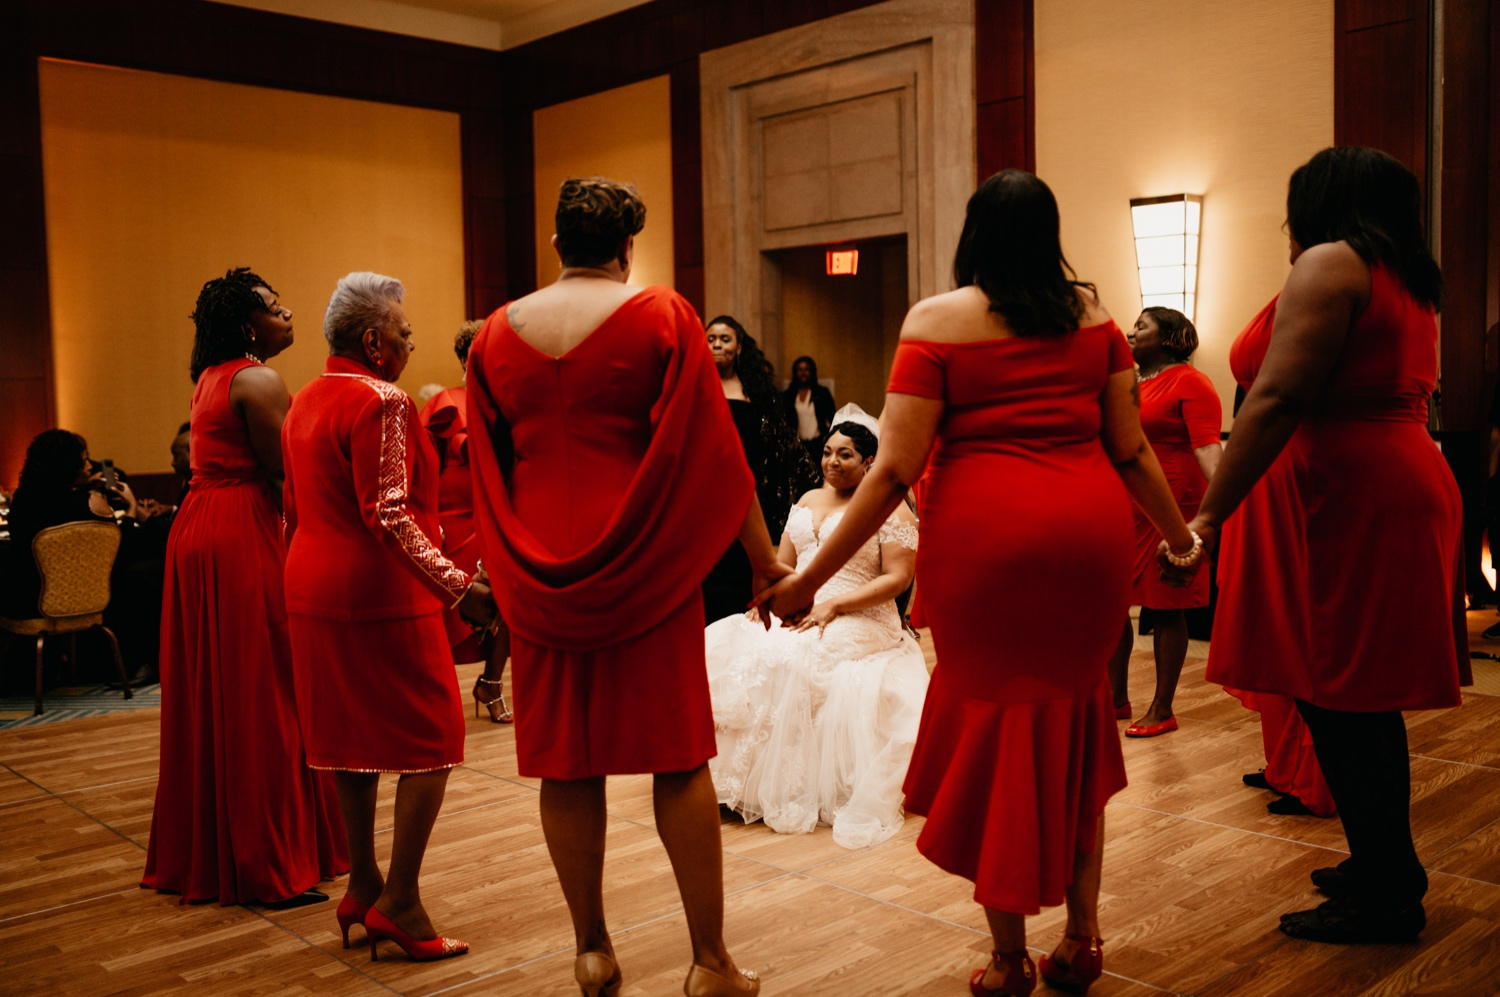 71_Ritz-carlton-wedding_charlotteNC_charlotteweddingphotographer.jpg